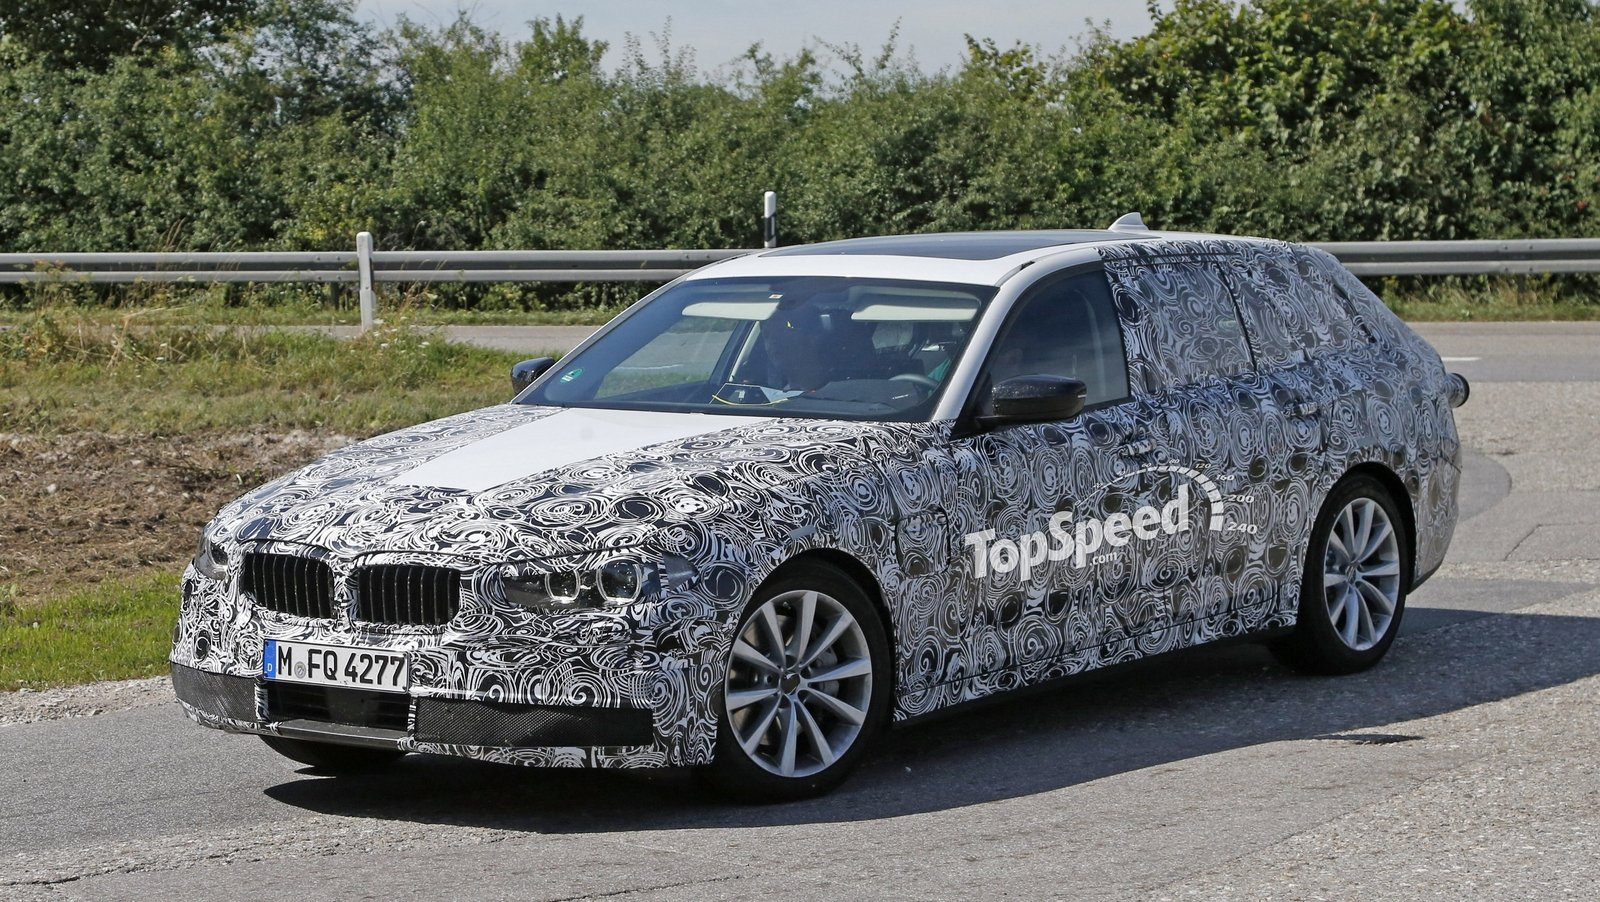 2016 bmw 5 series touring caught testing again spy shots news top speed. Black Bedroom Furniture Sets. Home Design Ideas